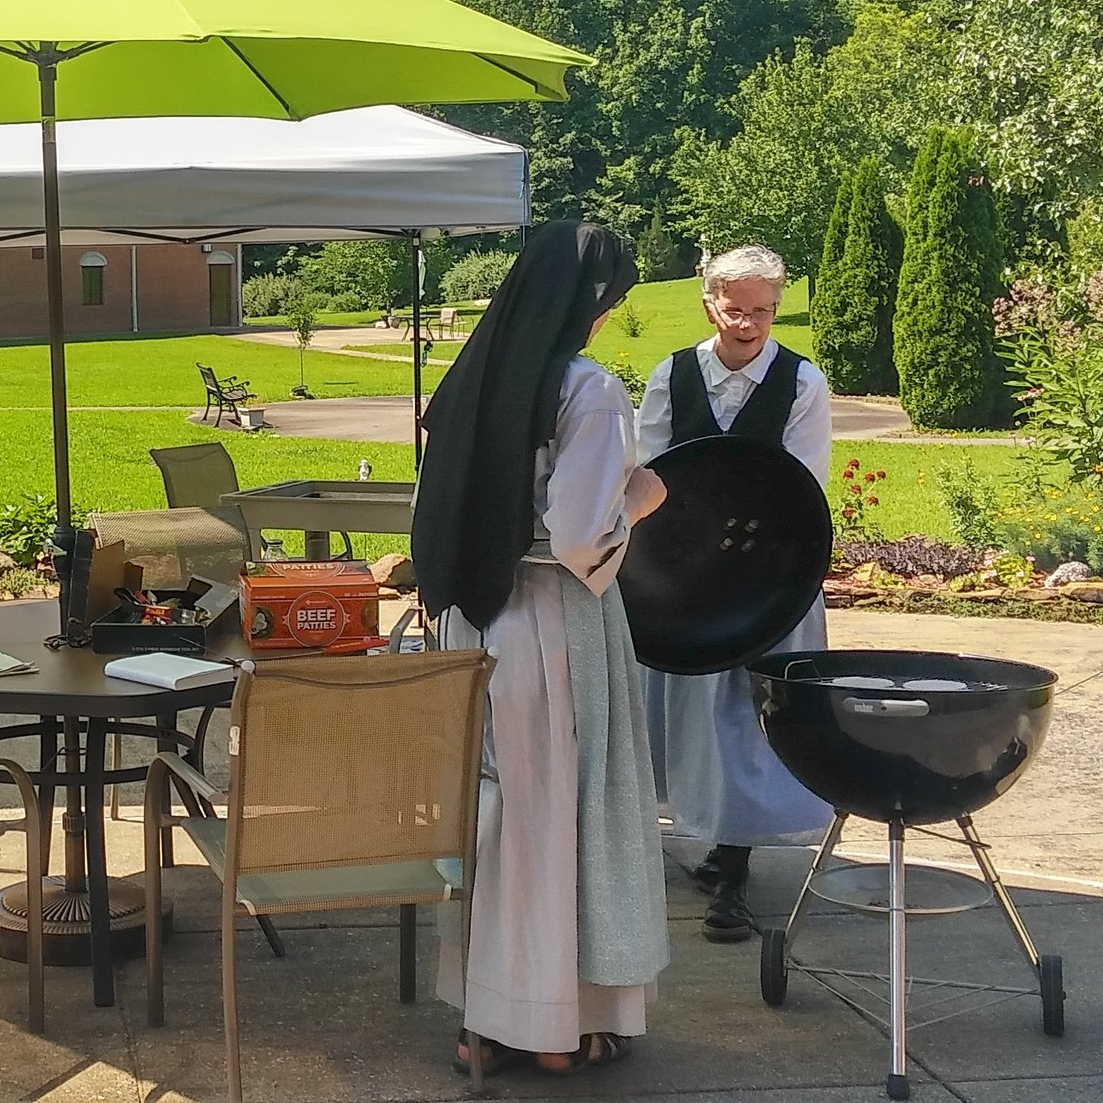 Christie giving Sr. Lucia Marie expert pointers on grilling hamburgers.